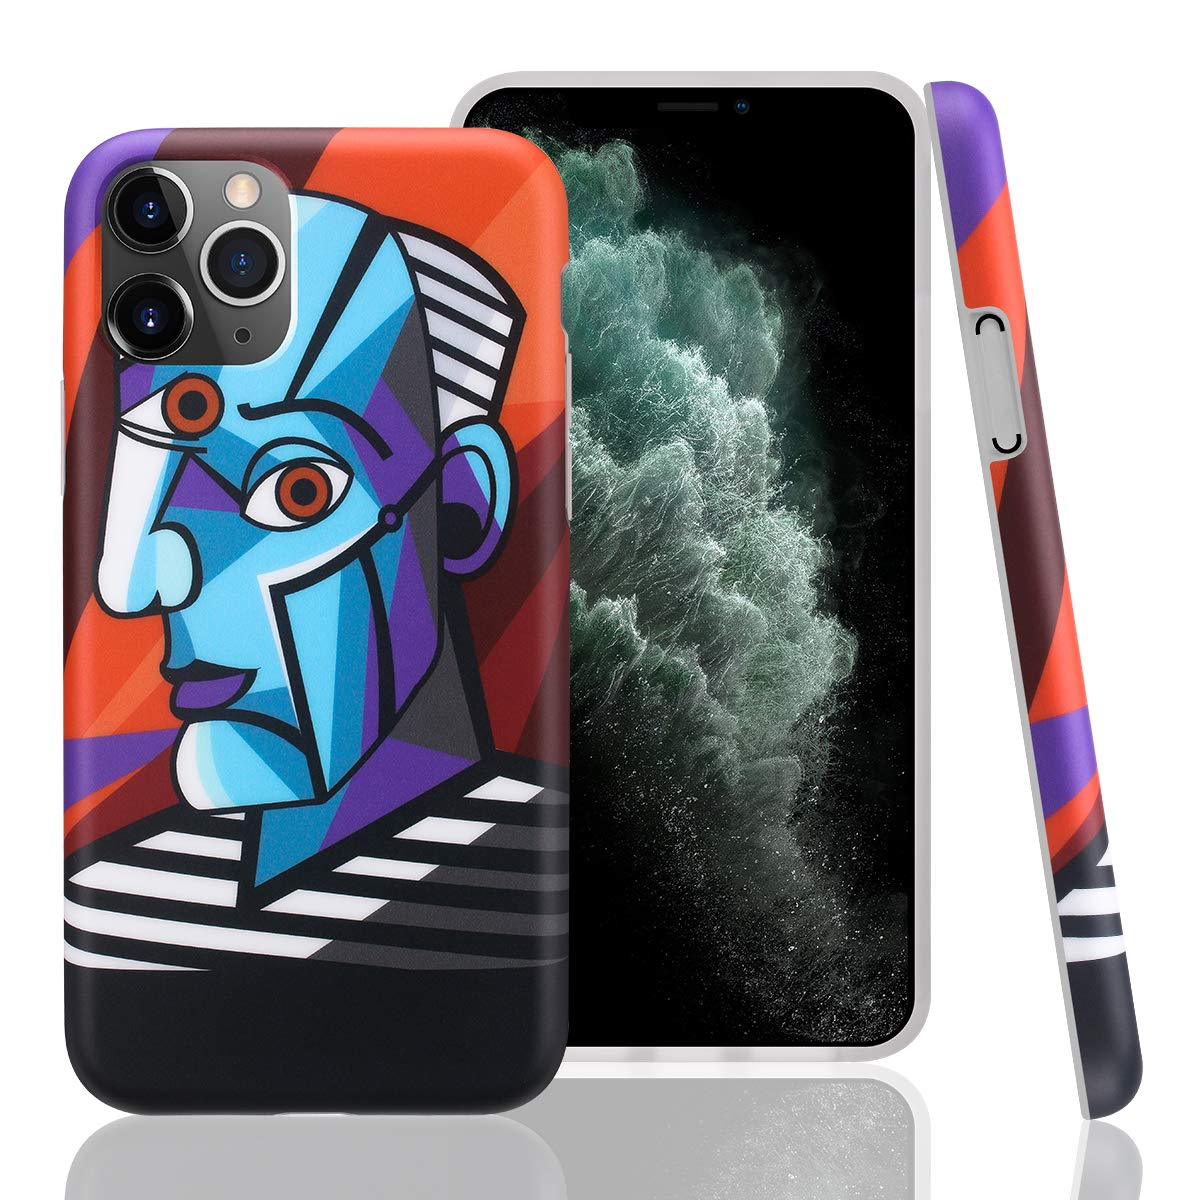 GOLINK Case for iPhone 11 Pro,Art Series Slim-Fit Ultra-Thin Anti-Scratch Shock Proof Dust Proof Anti-Finger Print TPU Gel Case for iPhone XI Pro 5.8 inch(2019 Release)-Cubist Face Portrait Painting